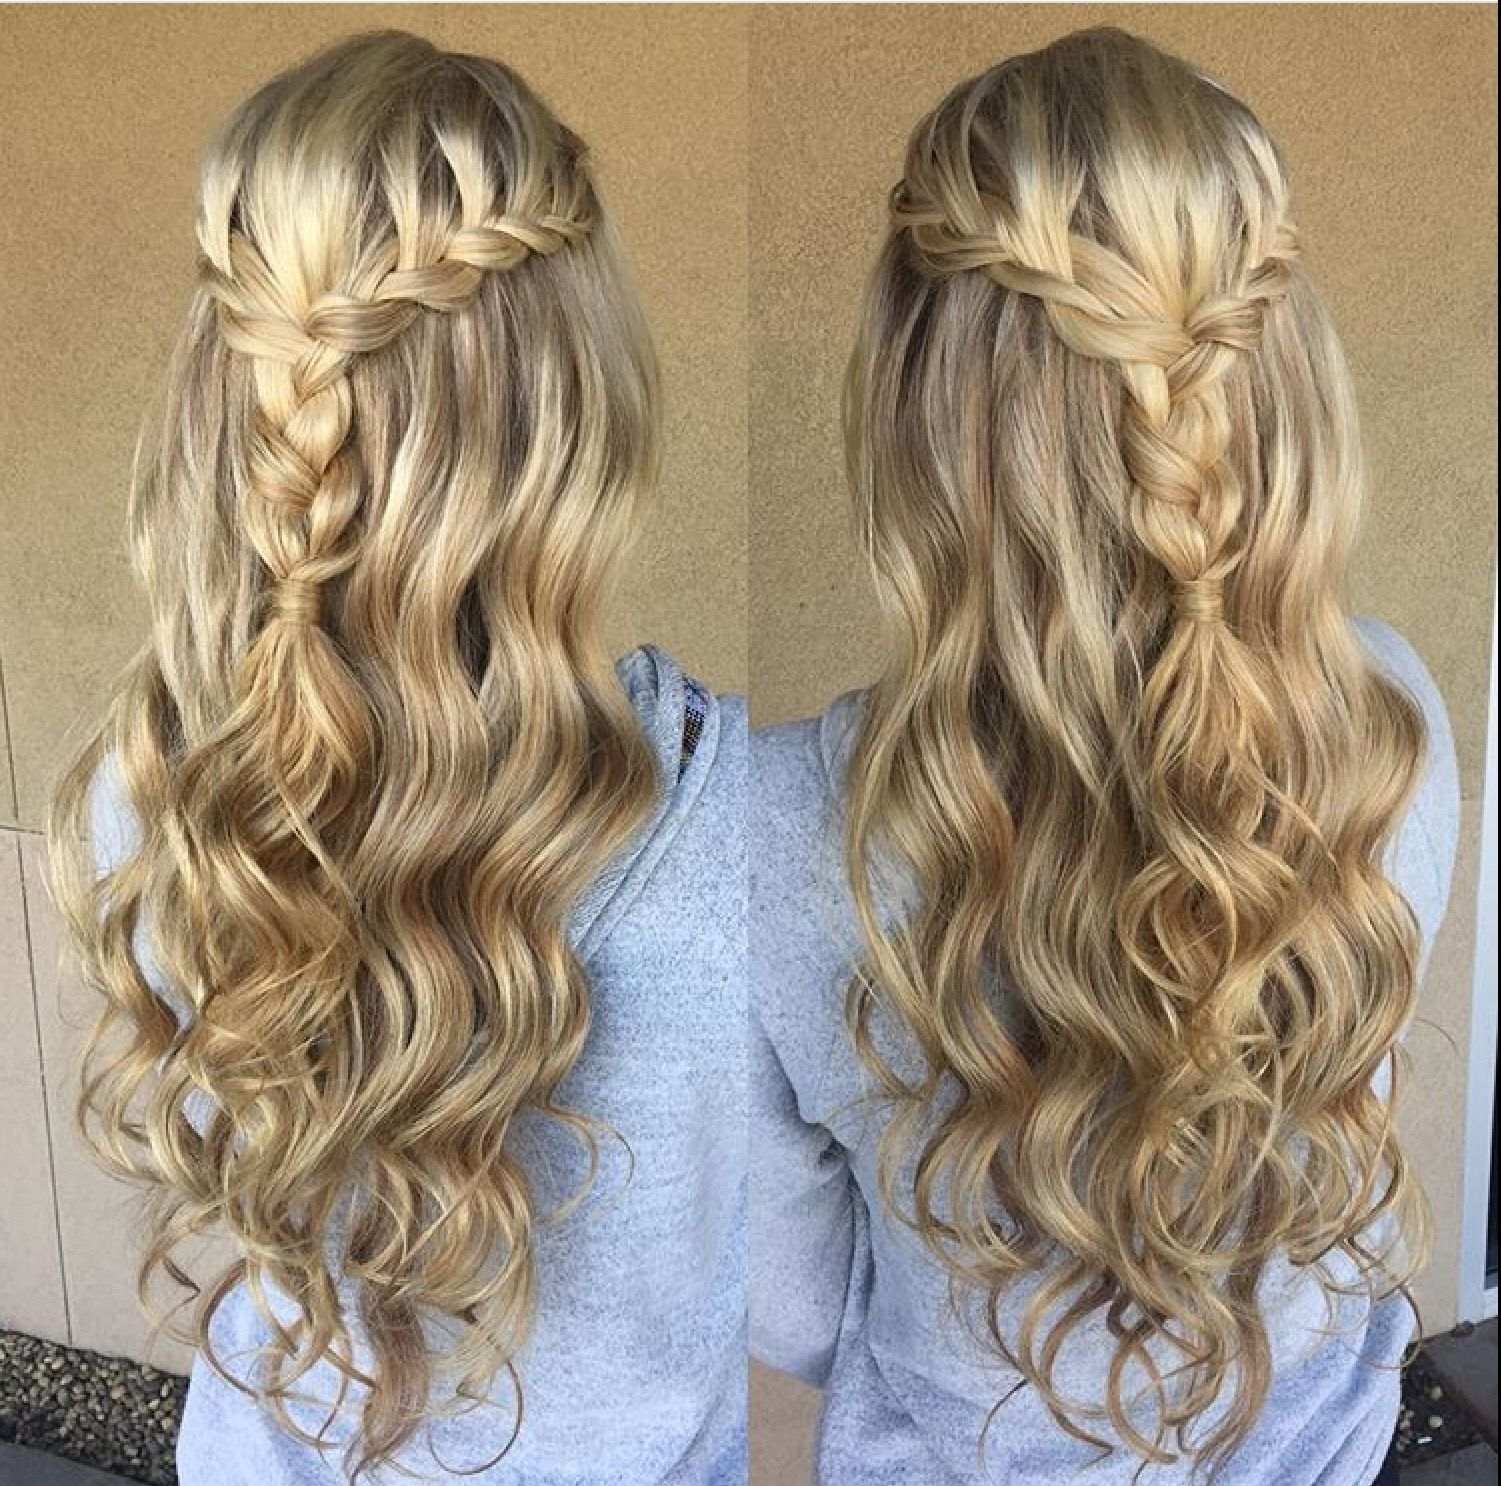 Hairstyles For Long Hair For Formal Formal Hairstyles Hairstylesforlonghair Long Hair Wedding Styles Prom Hairstyles For Long Hair Hair Styles